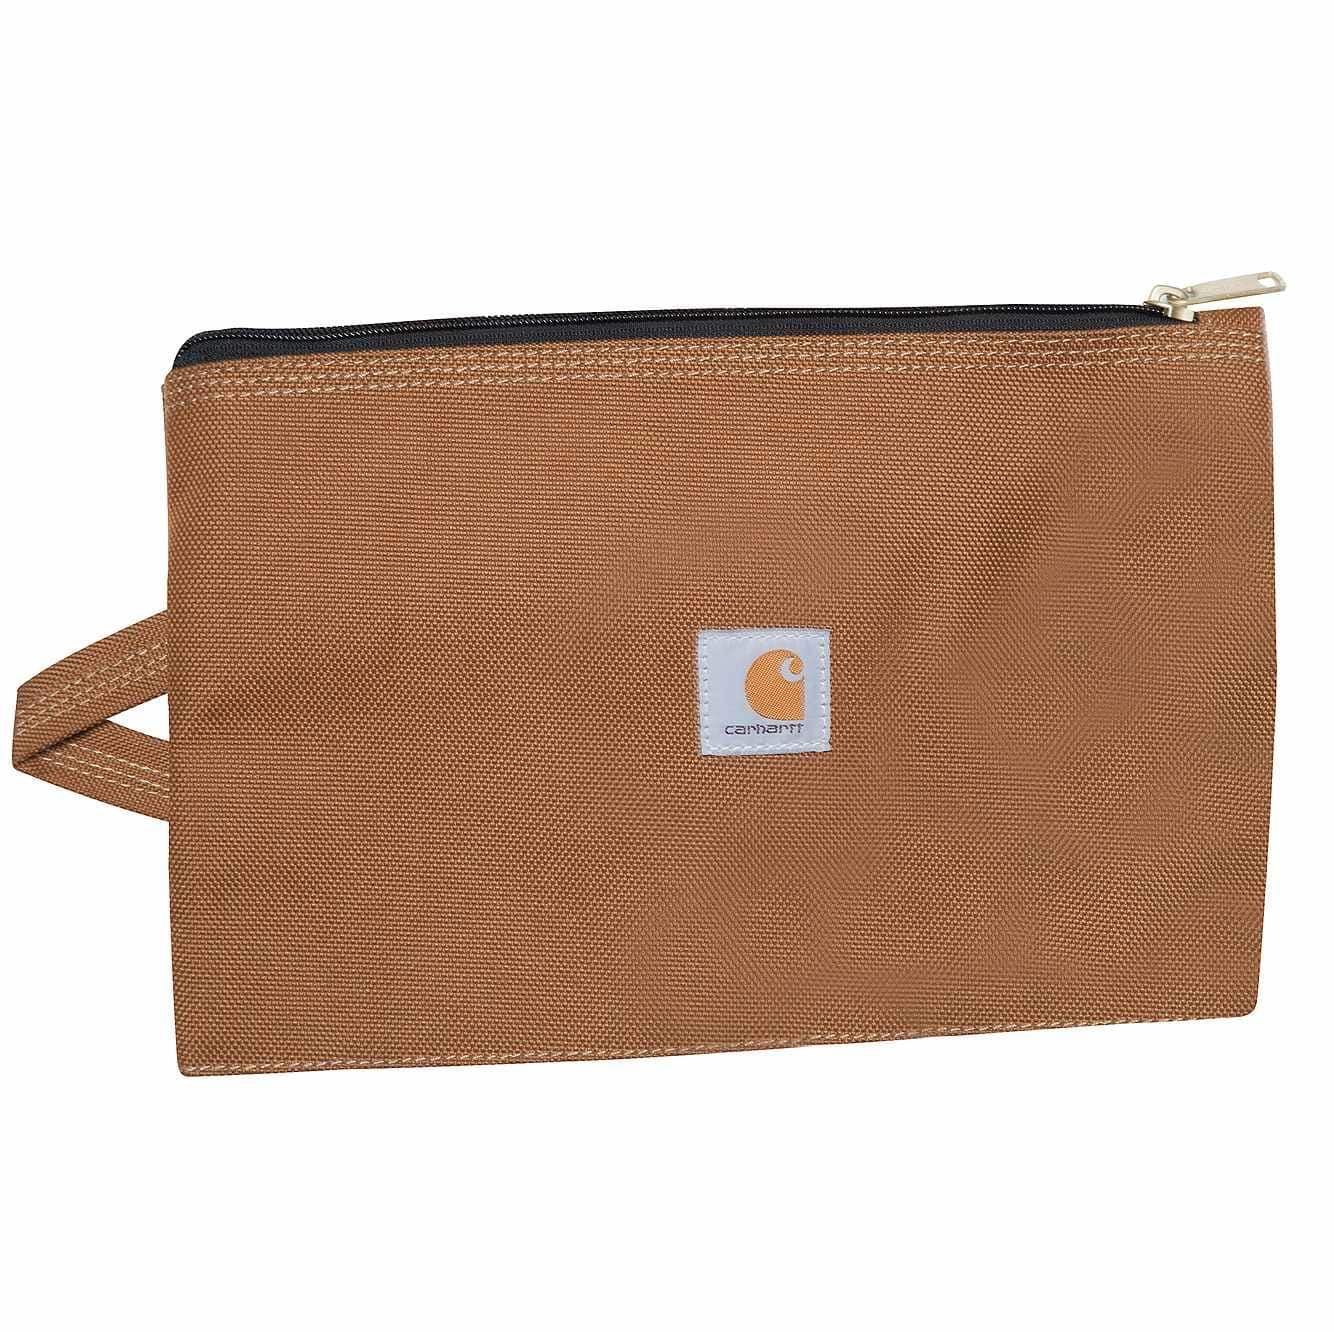 Picture of Legacy Large Tool Pouch in Carhartt Brown